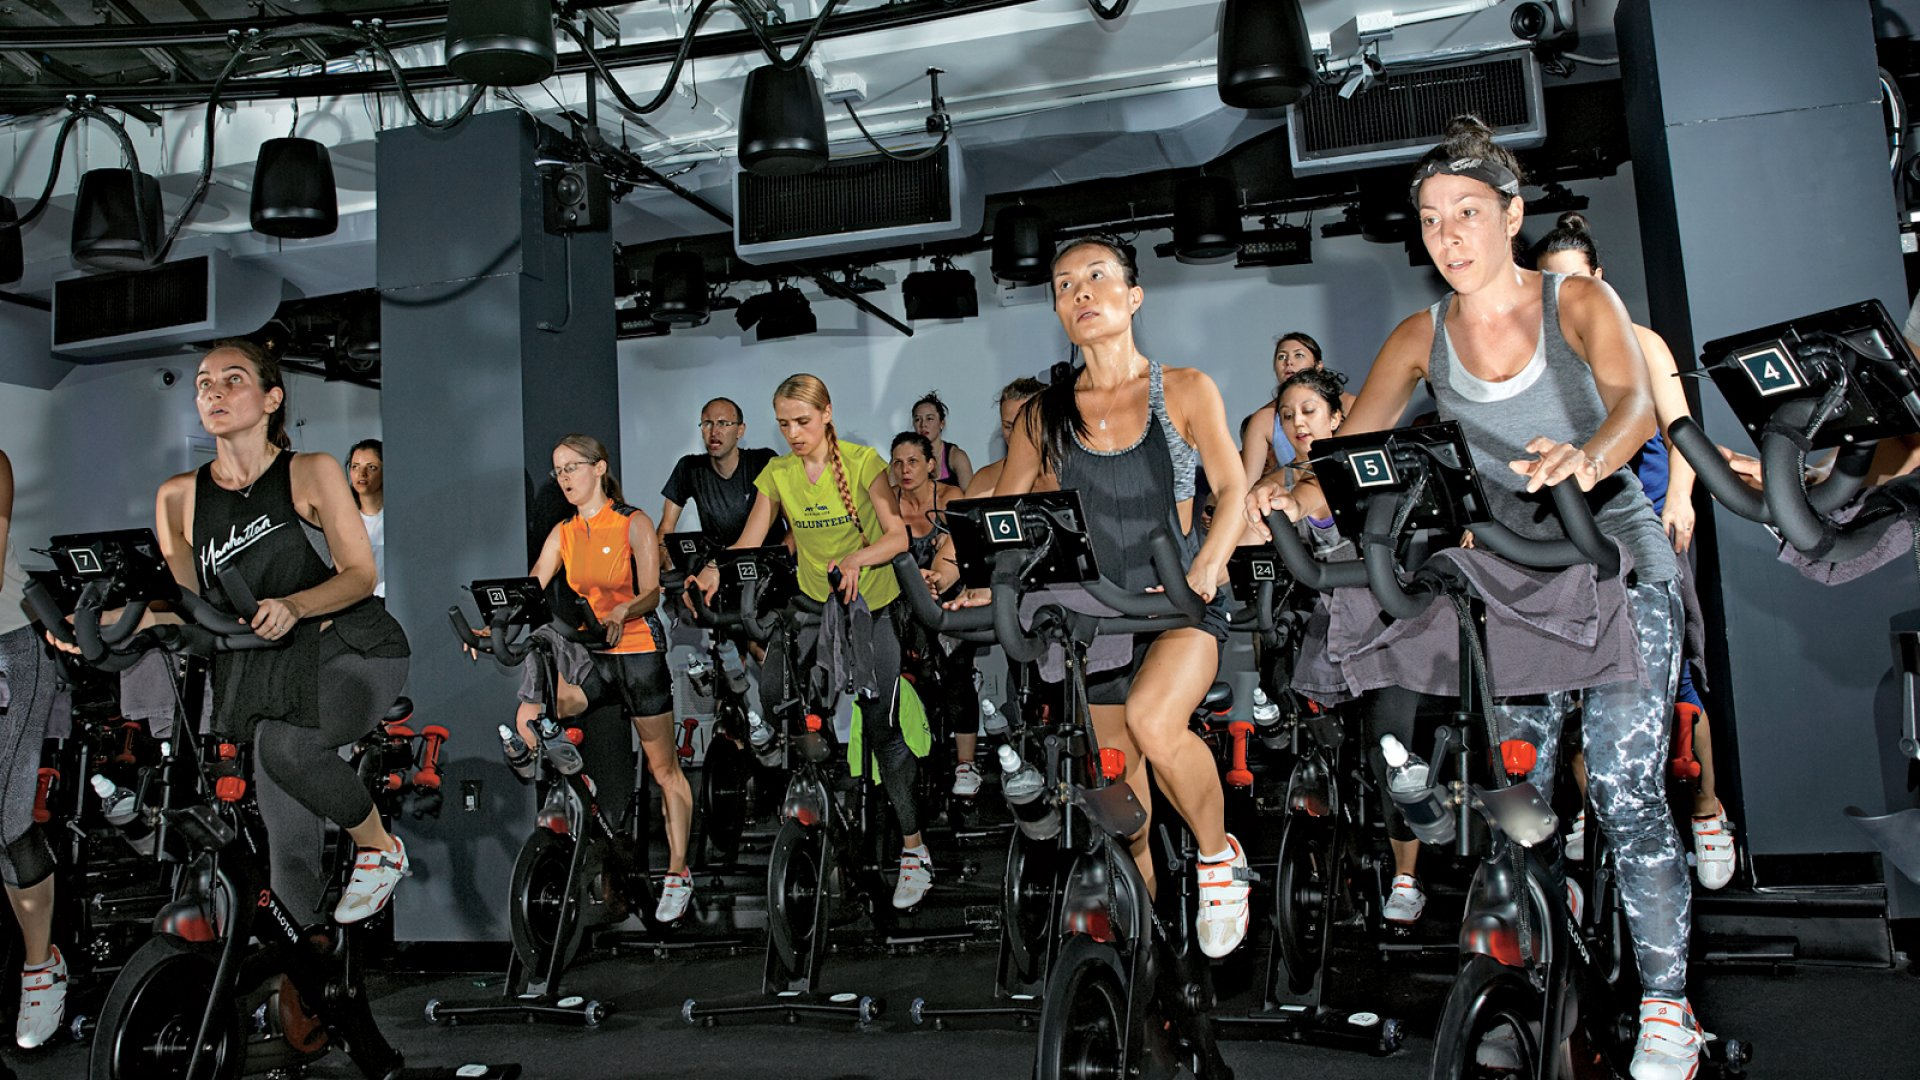 Peloton's customers have shown such devotion that some have tattoos of the company's logo.